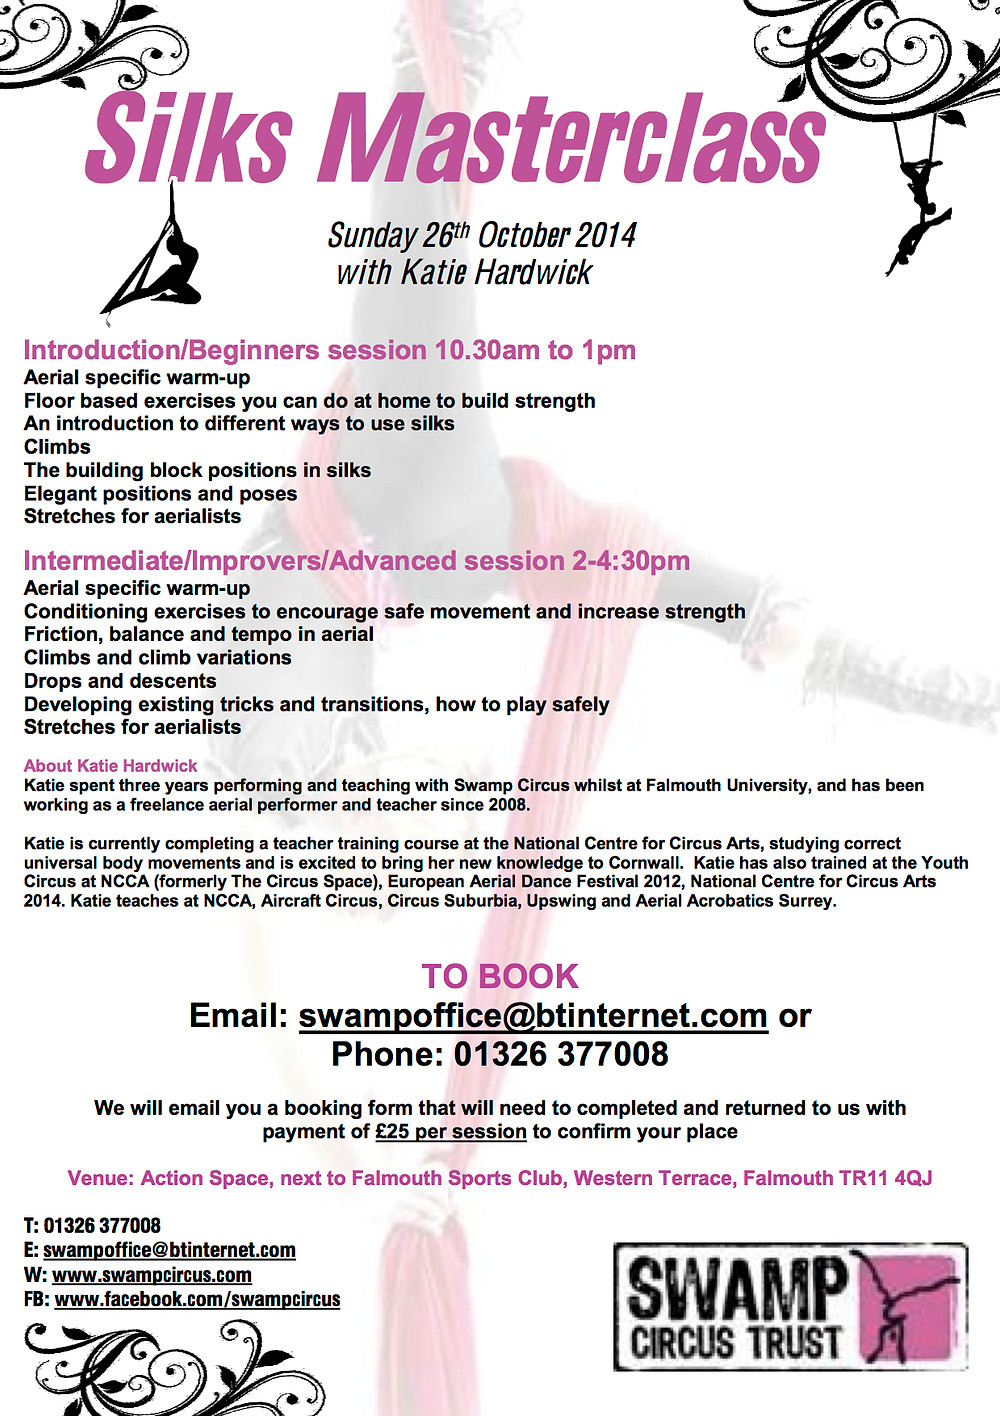 Silks Masterclass 26oct14-1.jpg